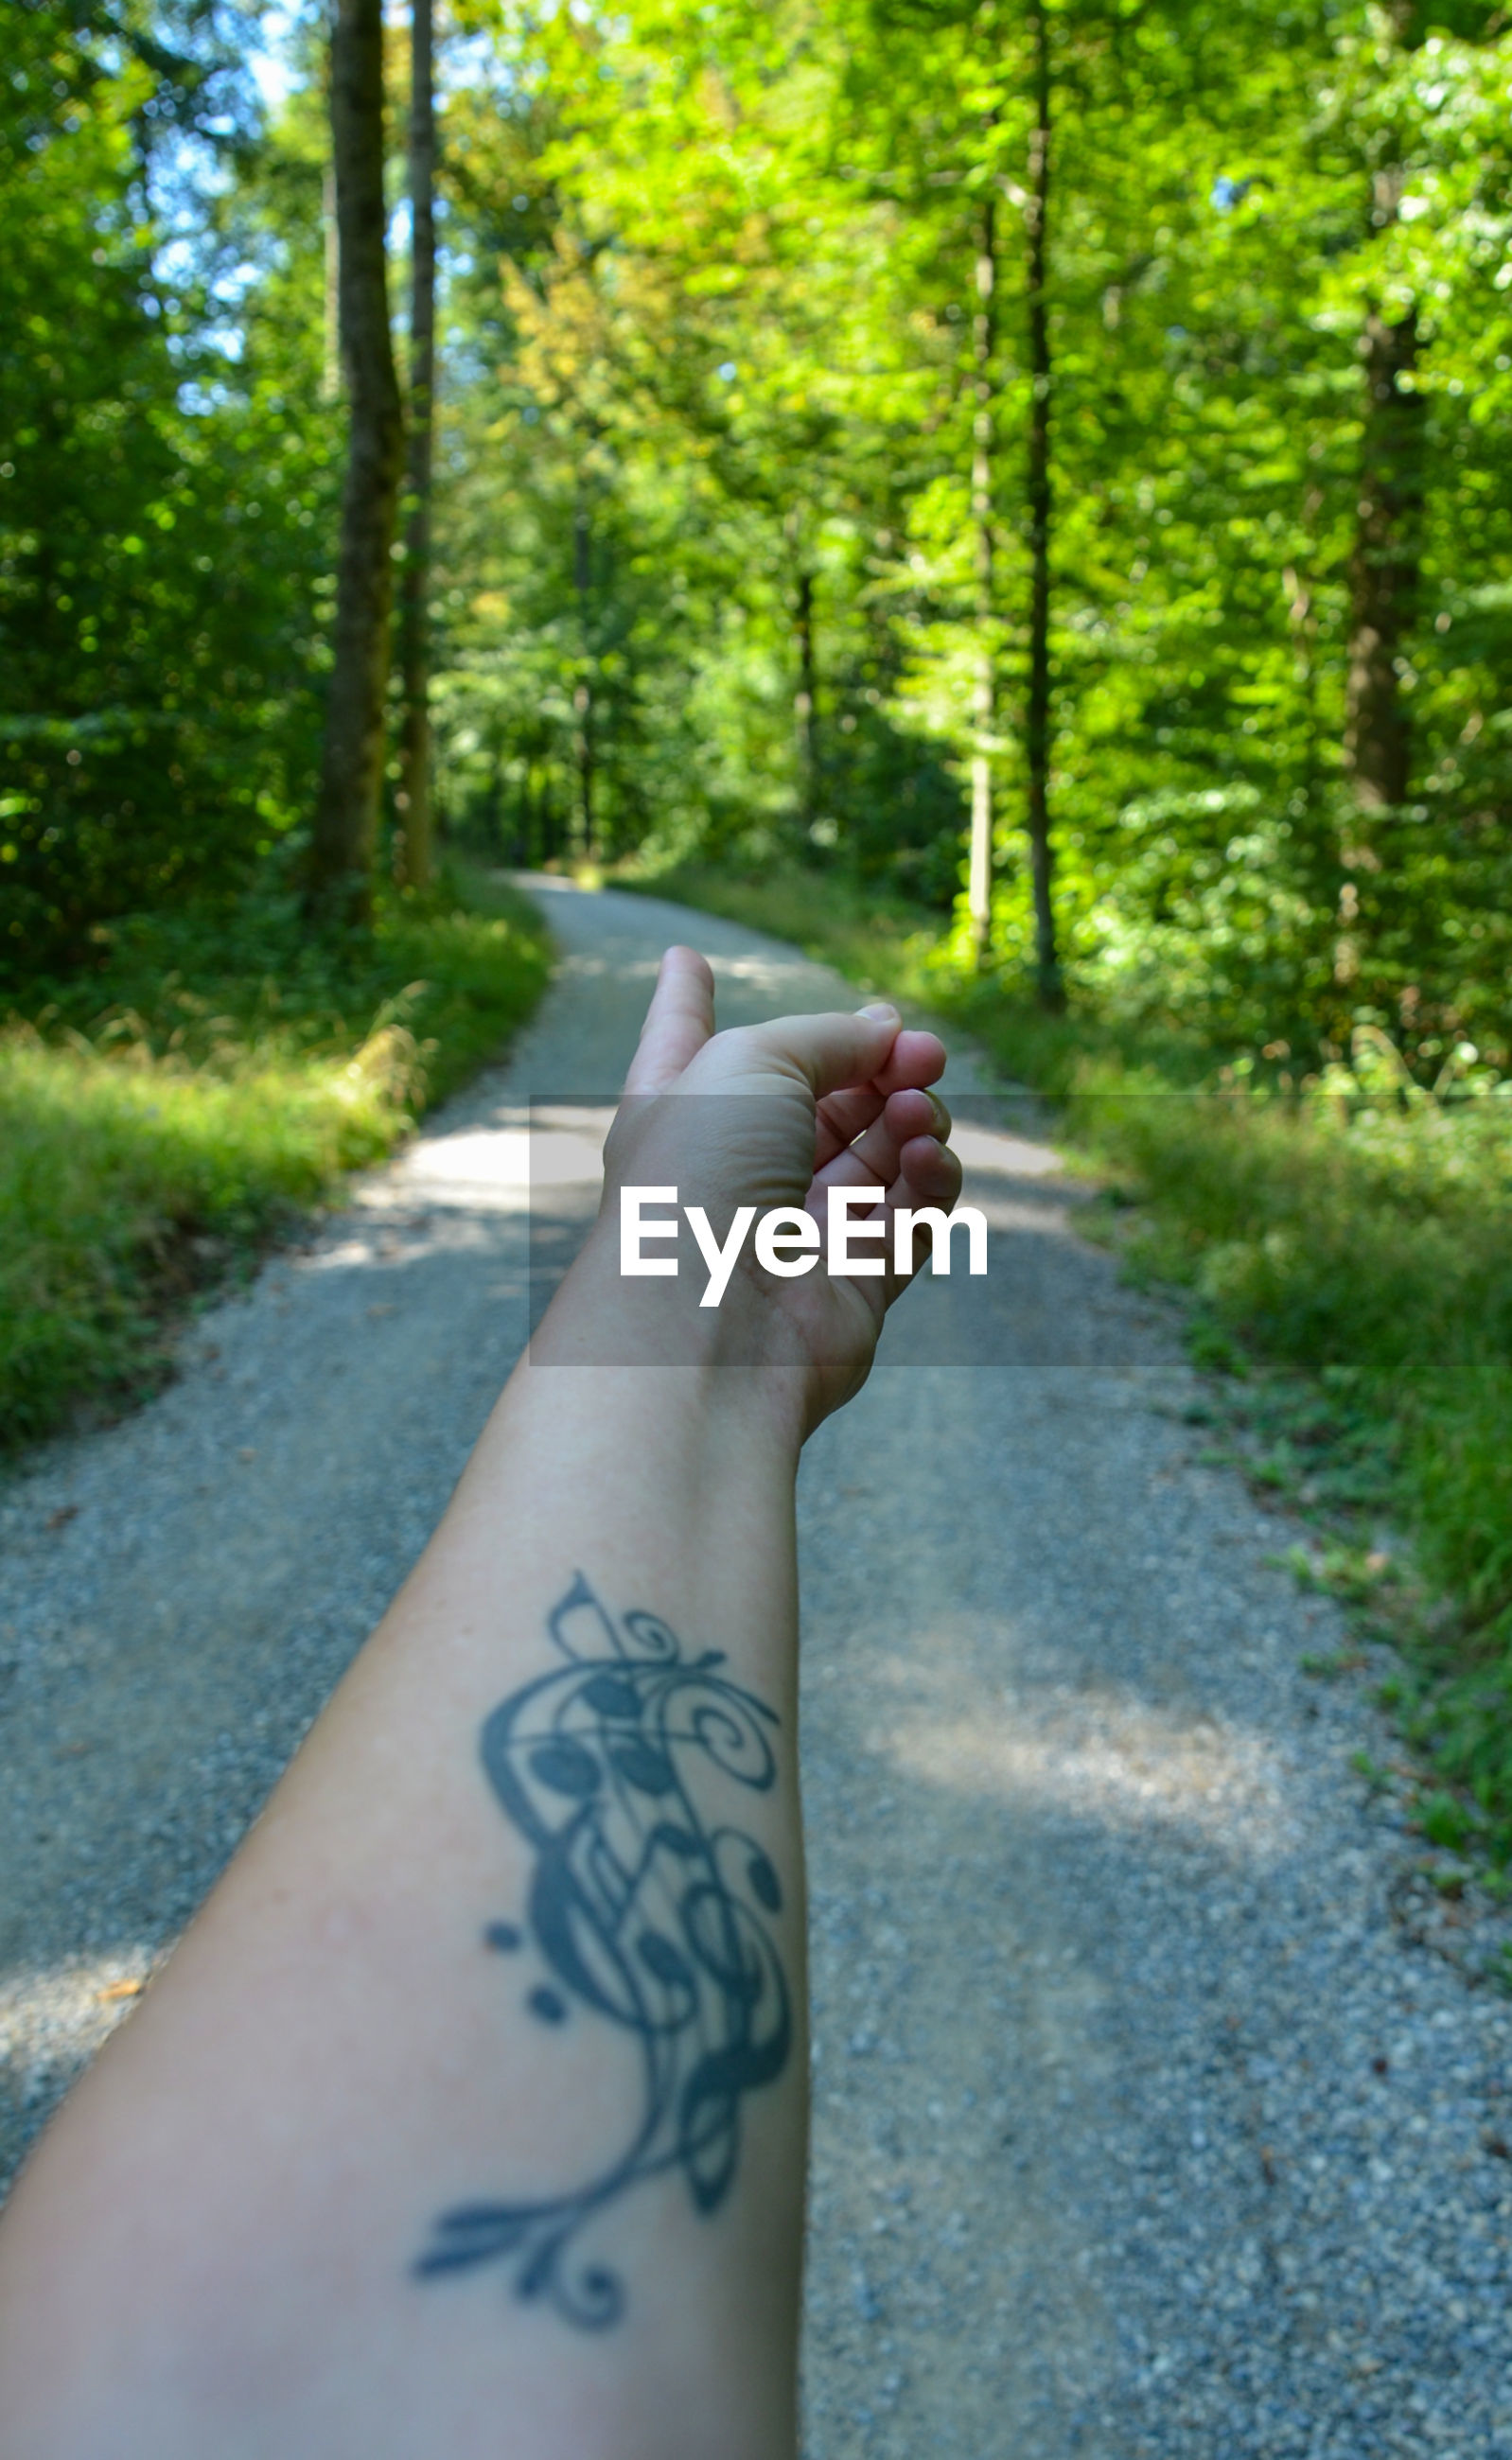 Cropped image of tattooed hand gesturing against trees